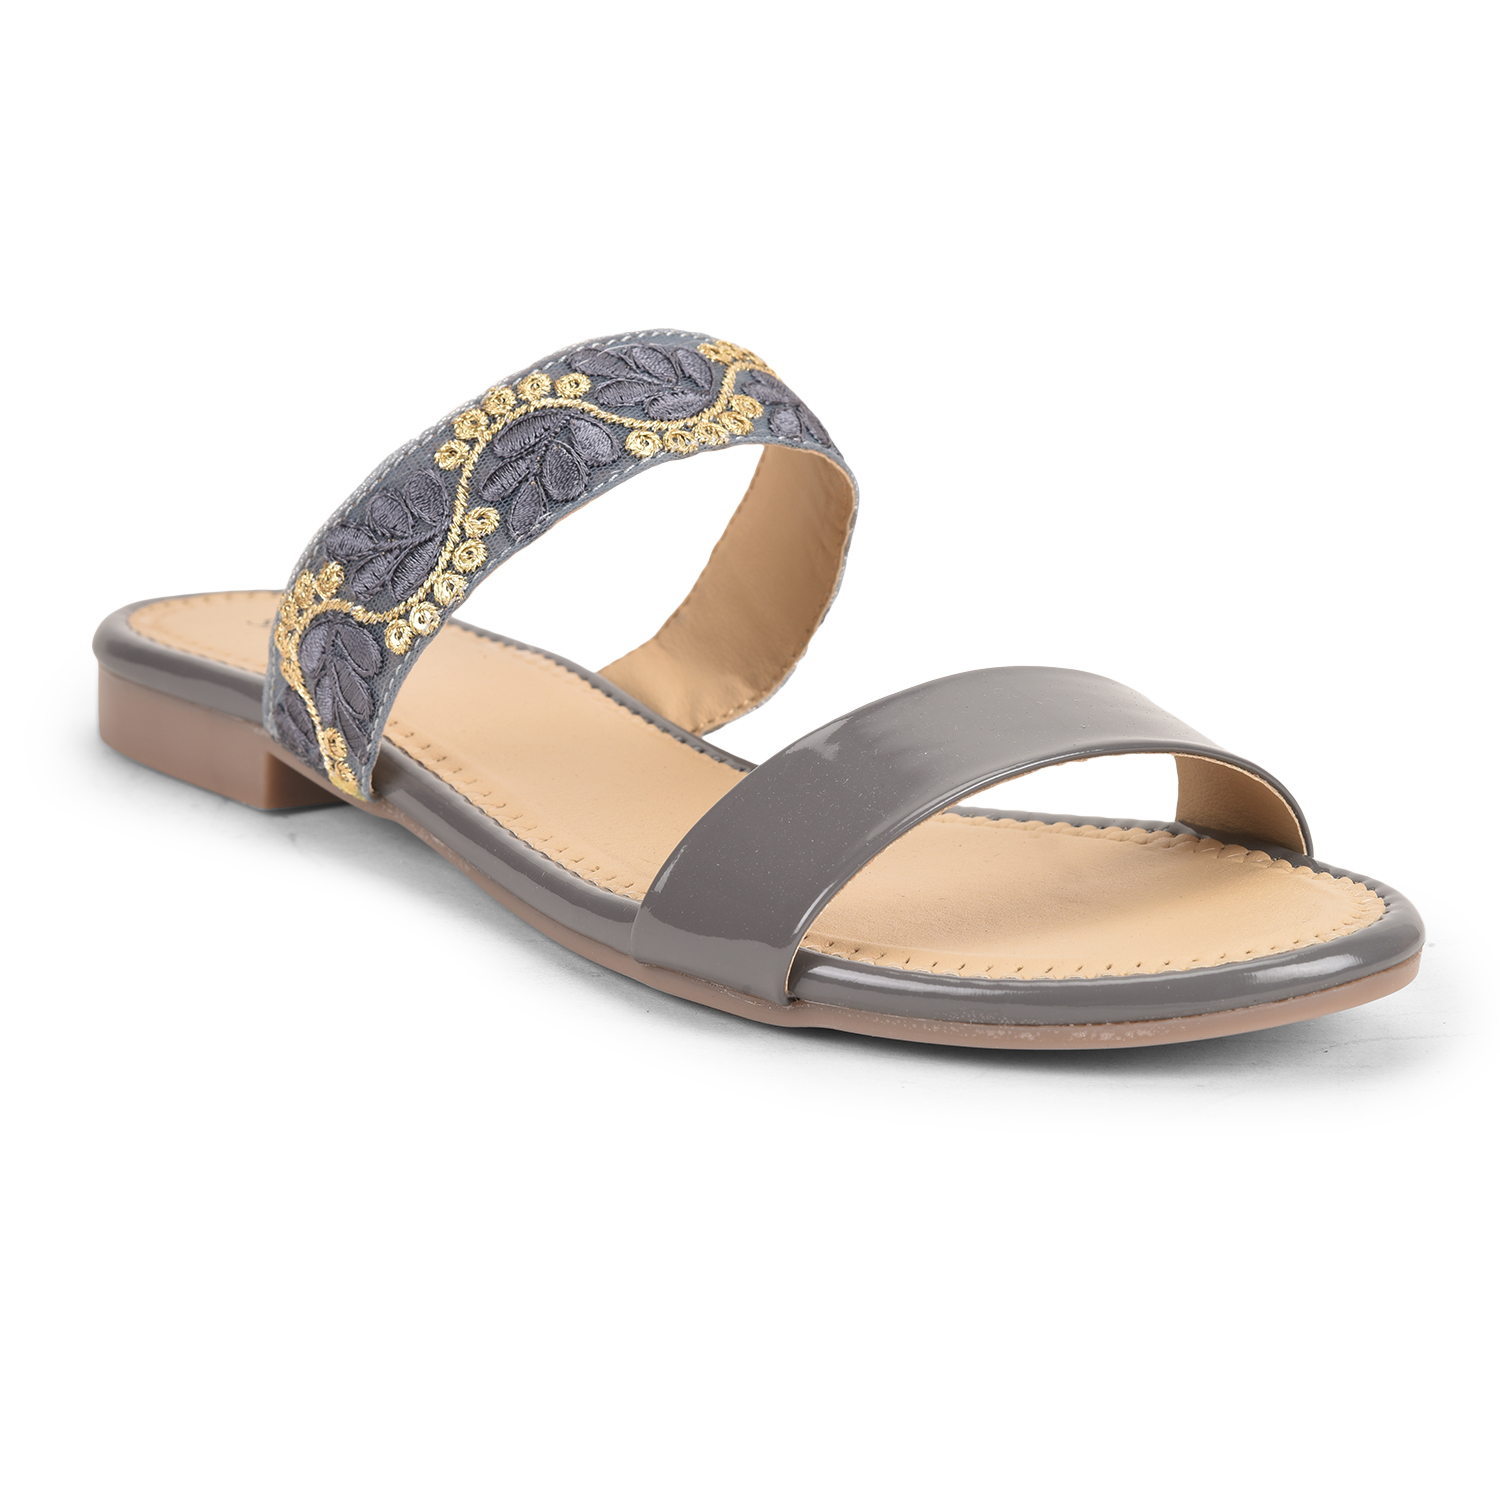 SALARIO | Salario Floral Embroidered Slip-On Flat Sandals with Straps